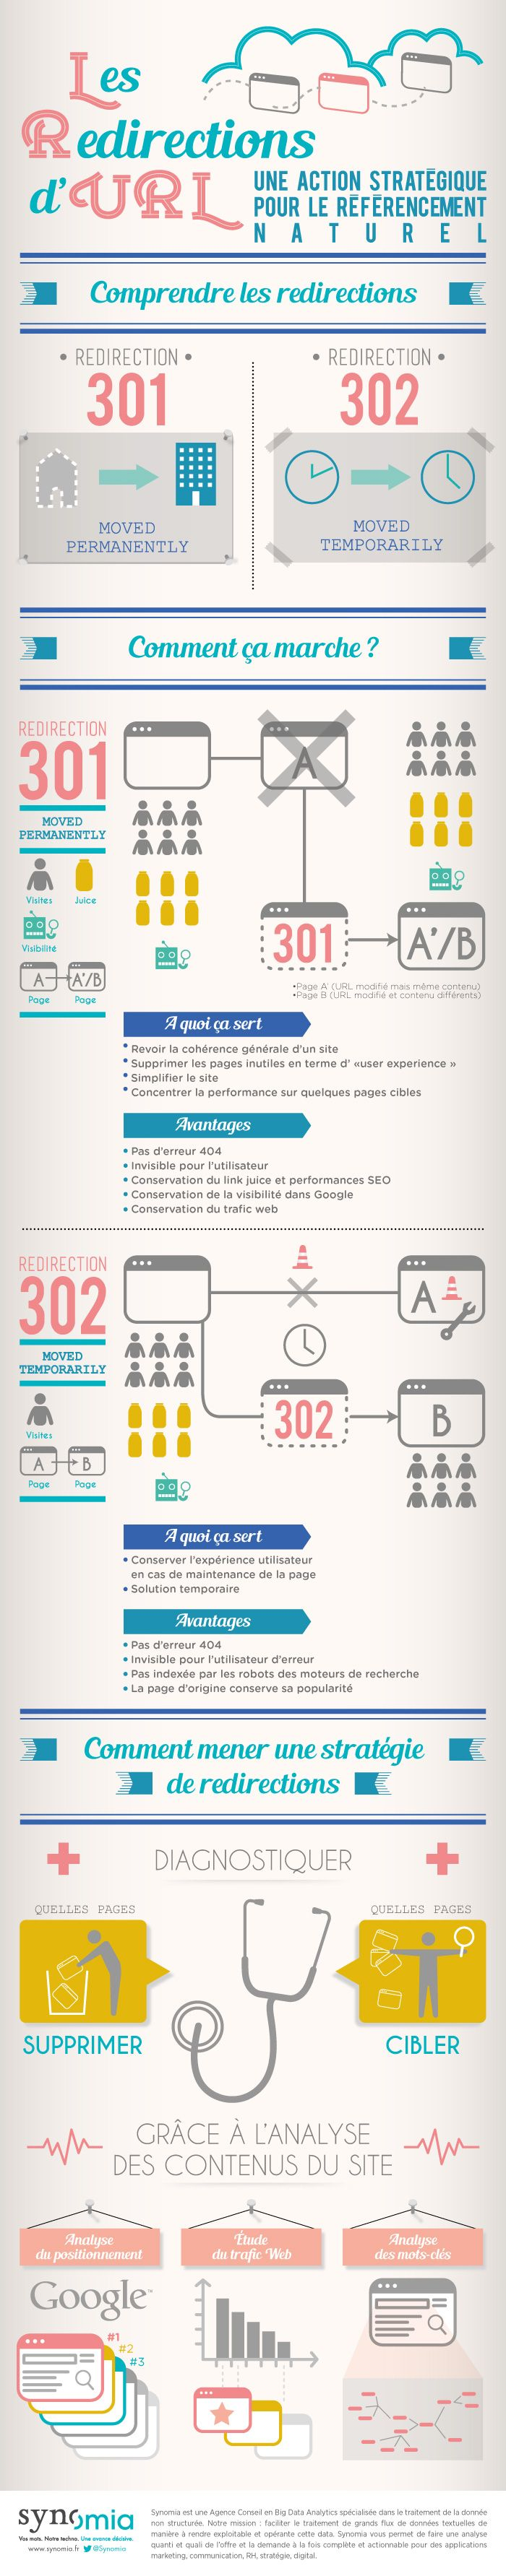 Infographie : SEO et redirections 301, 302